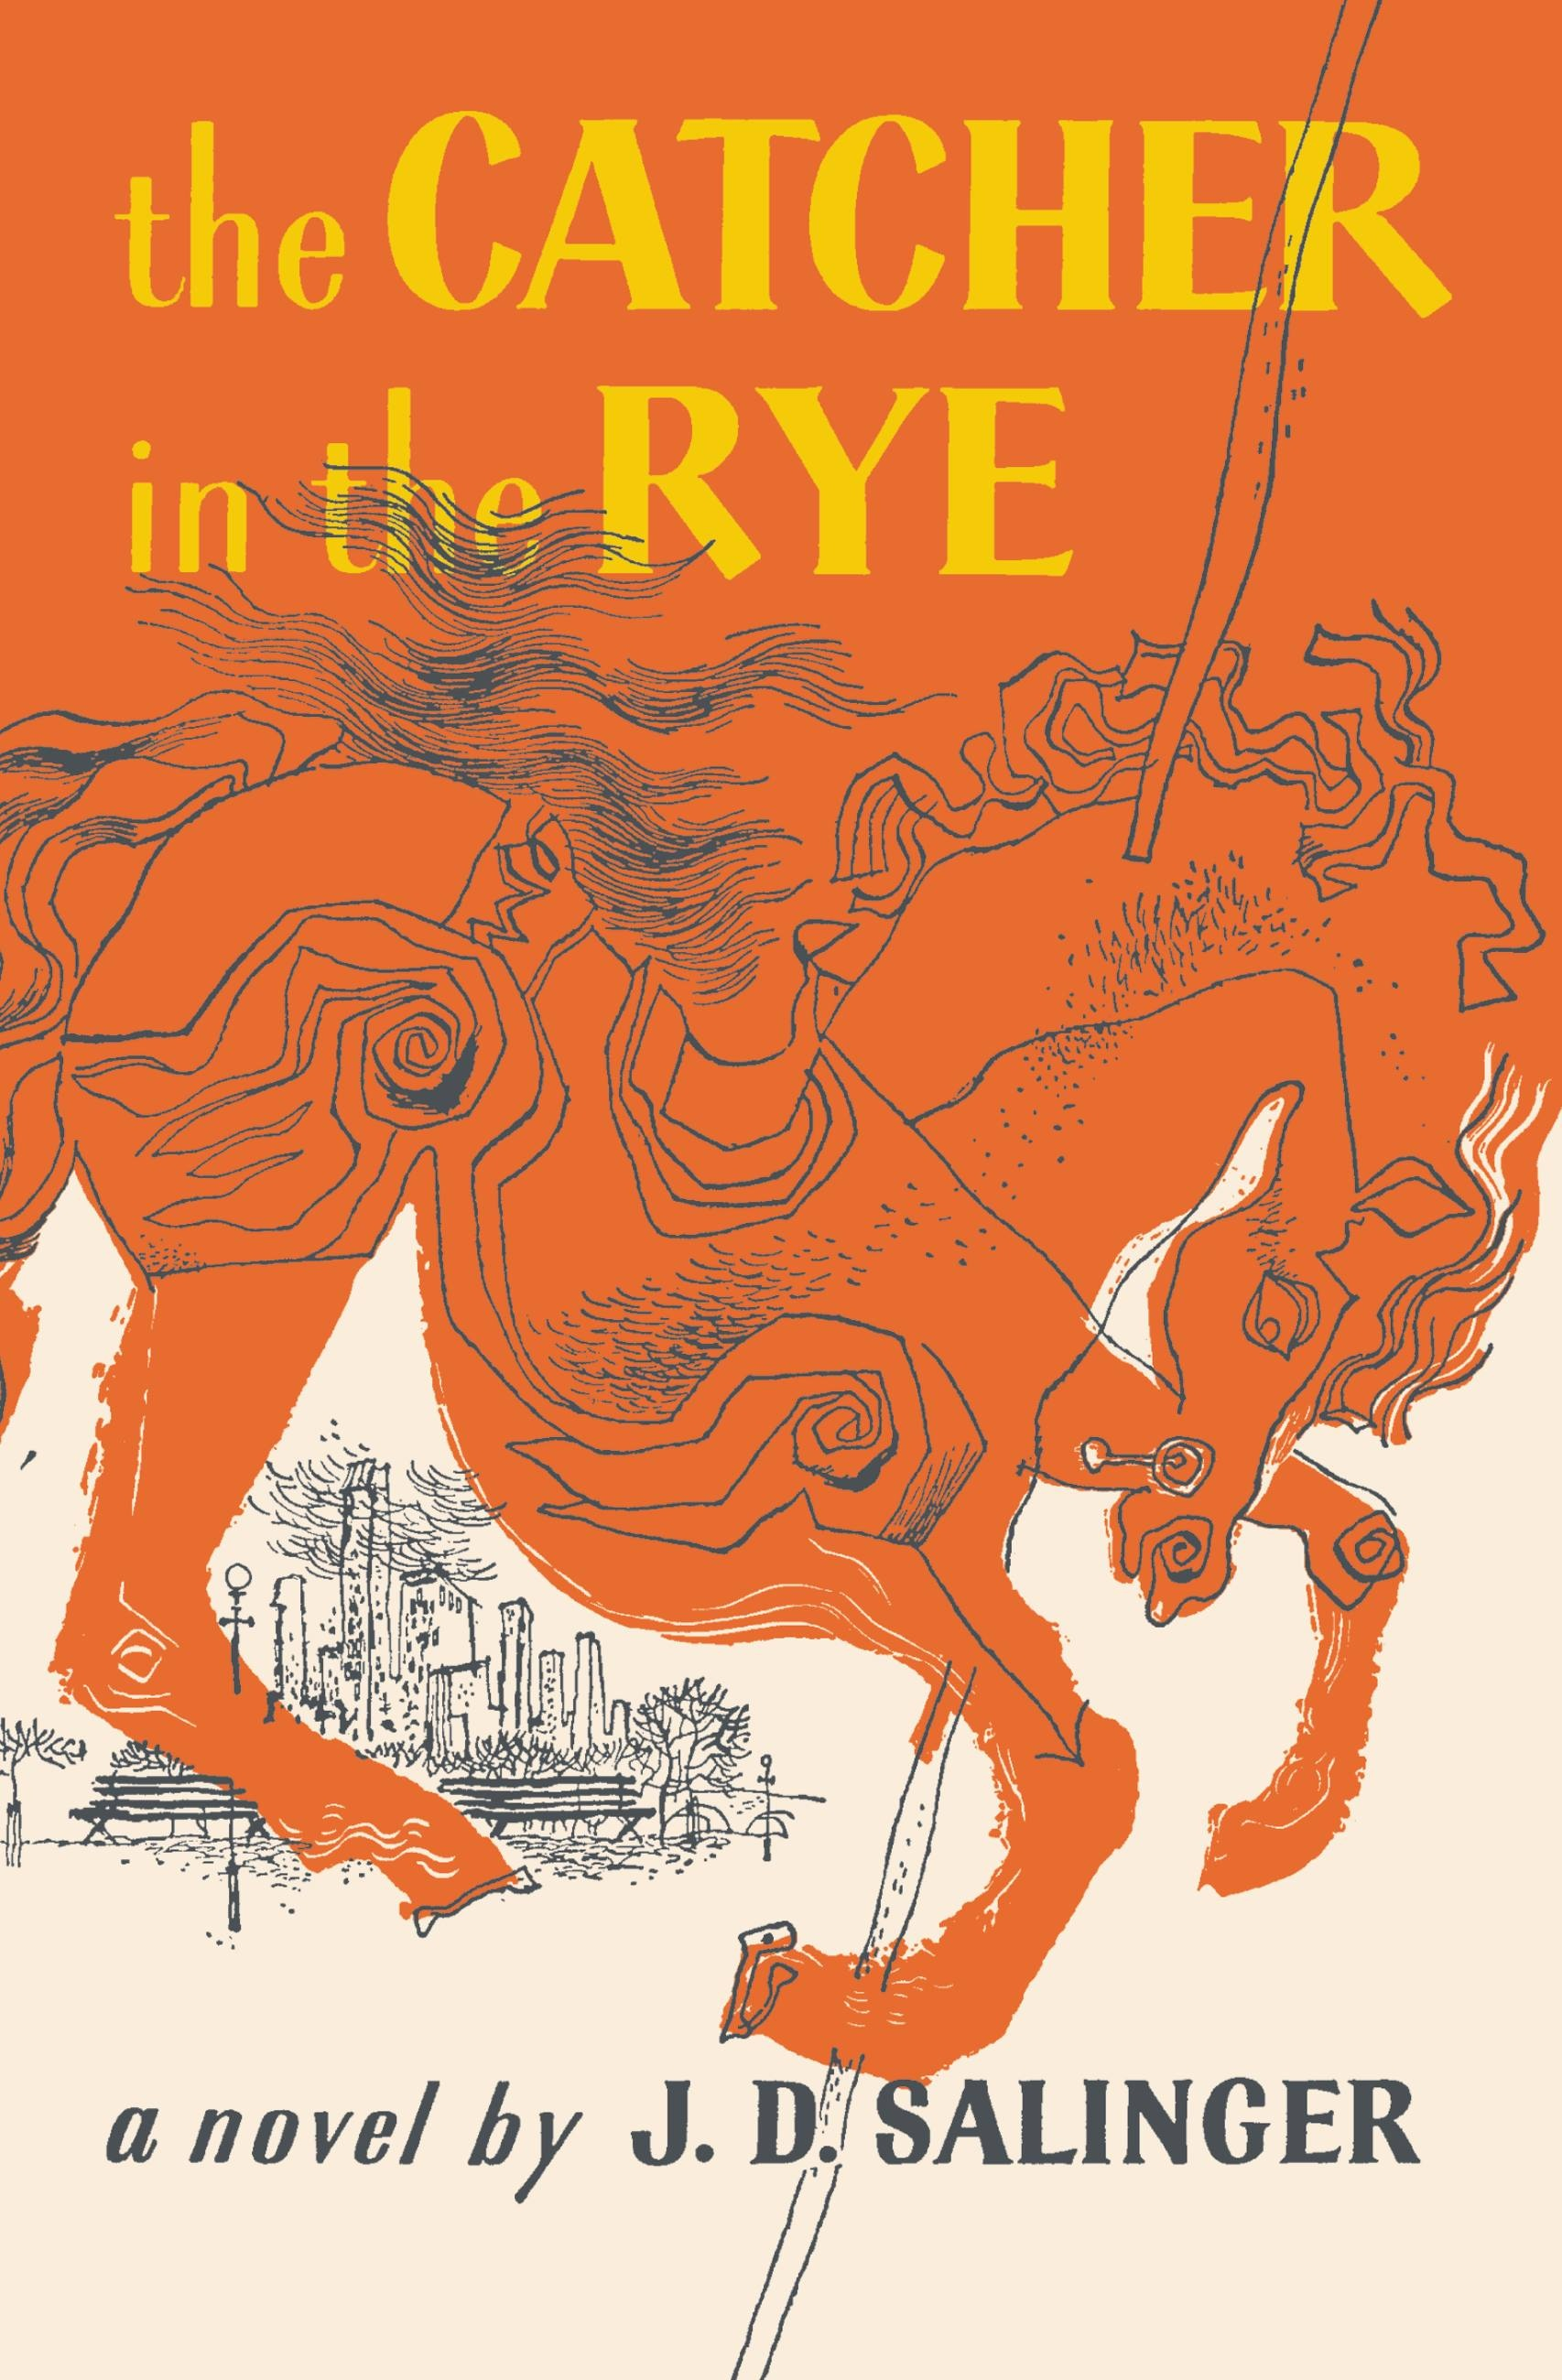 an analysis of my own conspiracy theory on catcher in the rye by j d salinger